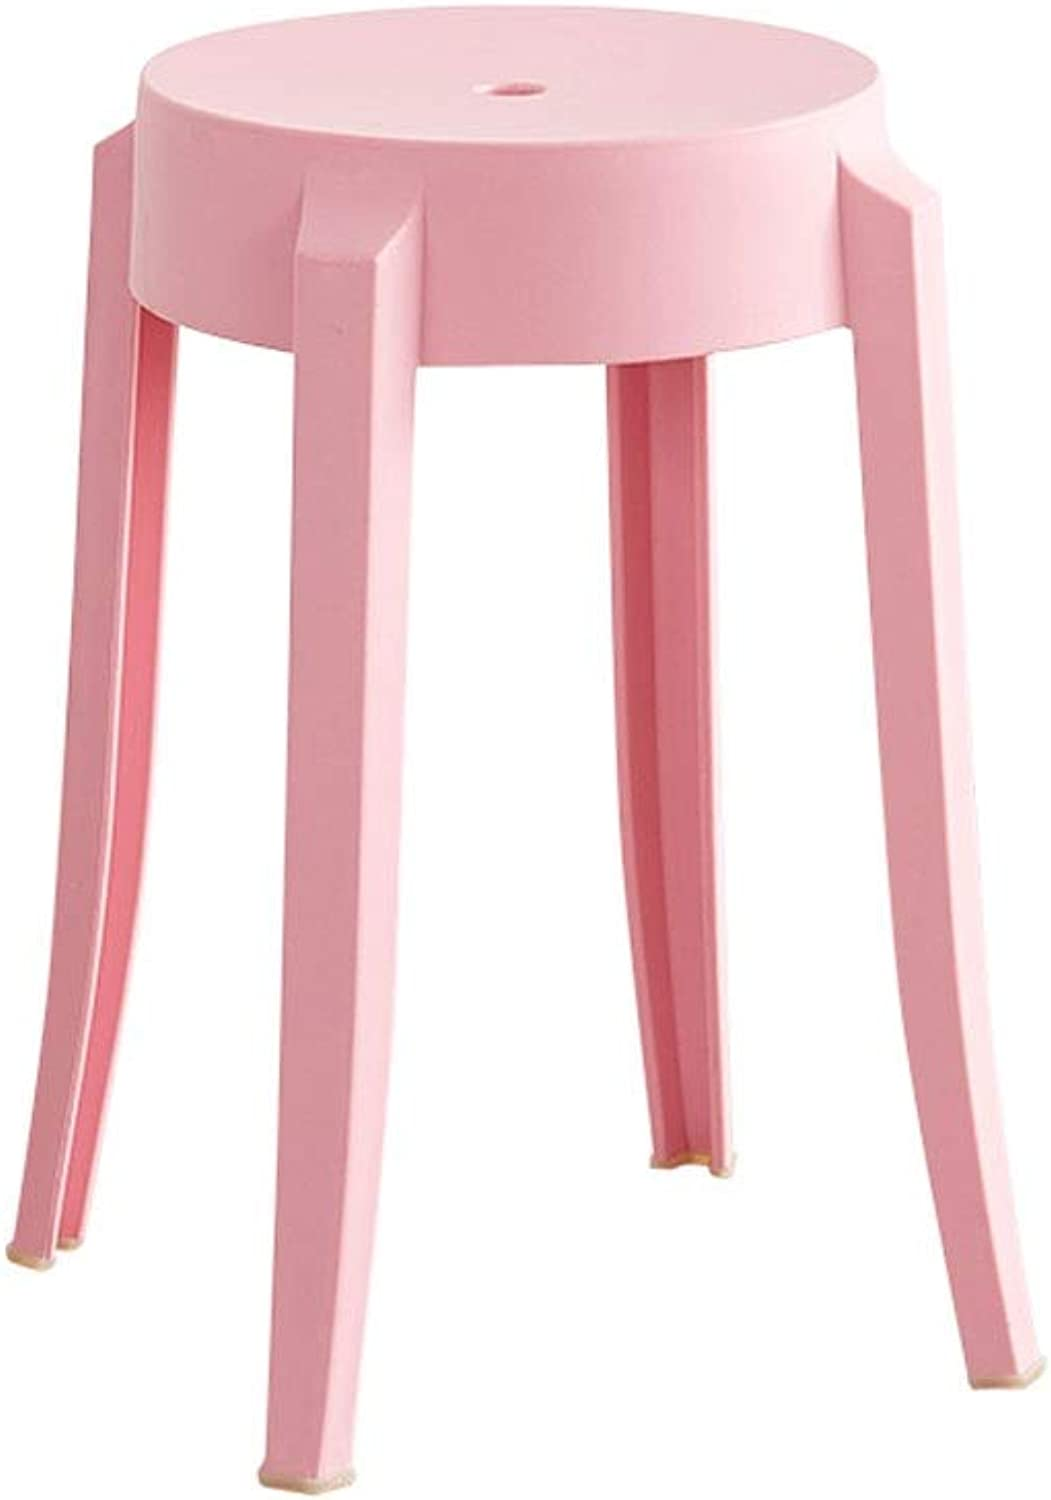 A+ Household Plastic Round Stool,Thickened Living Room Small Bench,Restaurant Simple High Dining Table Chair,Non-Slip PP Four-Legged Stool - 26cmX47cm (color   Pink)